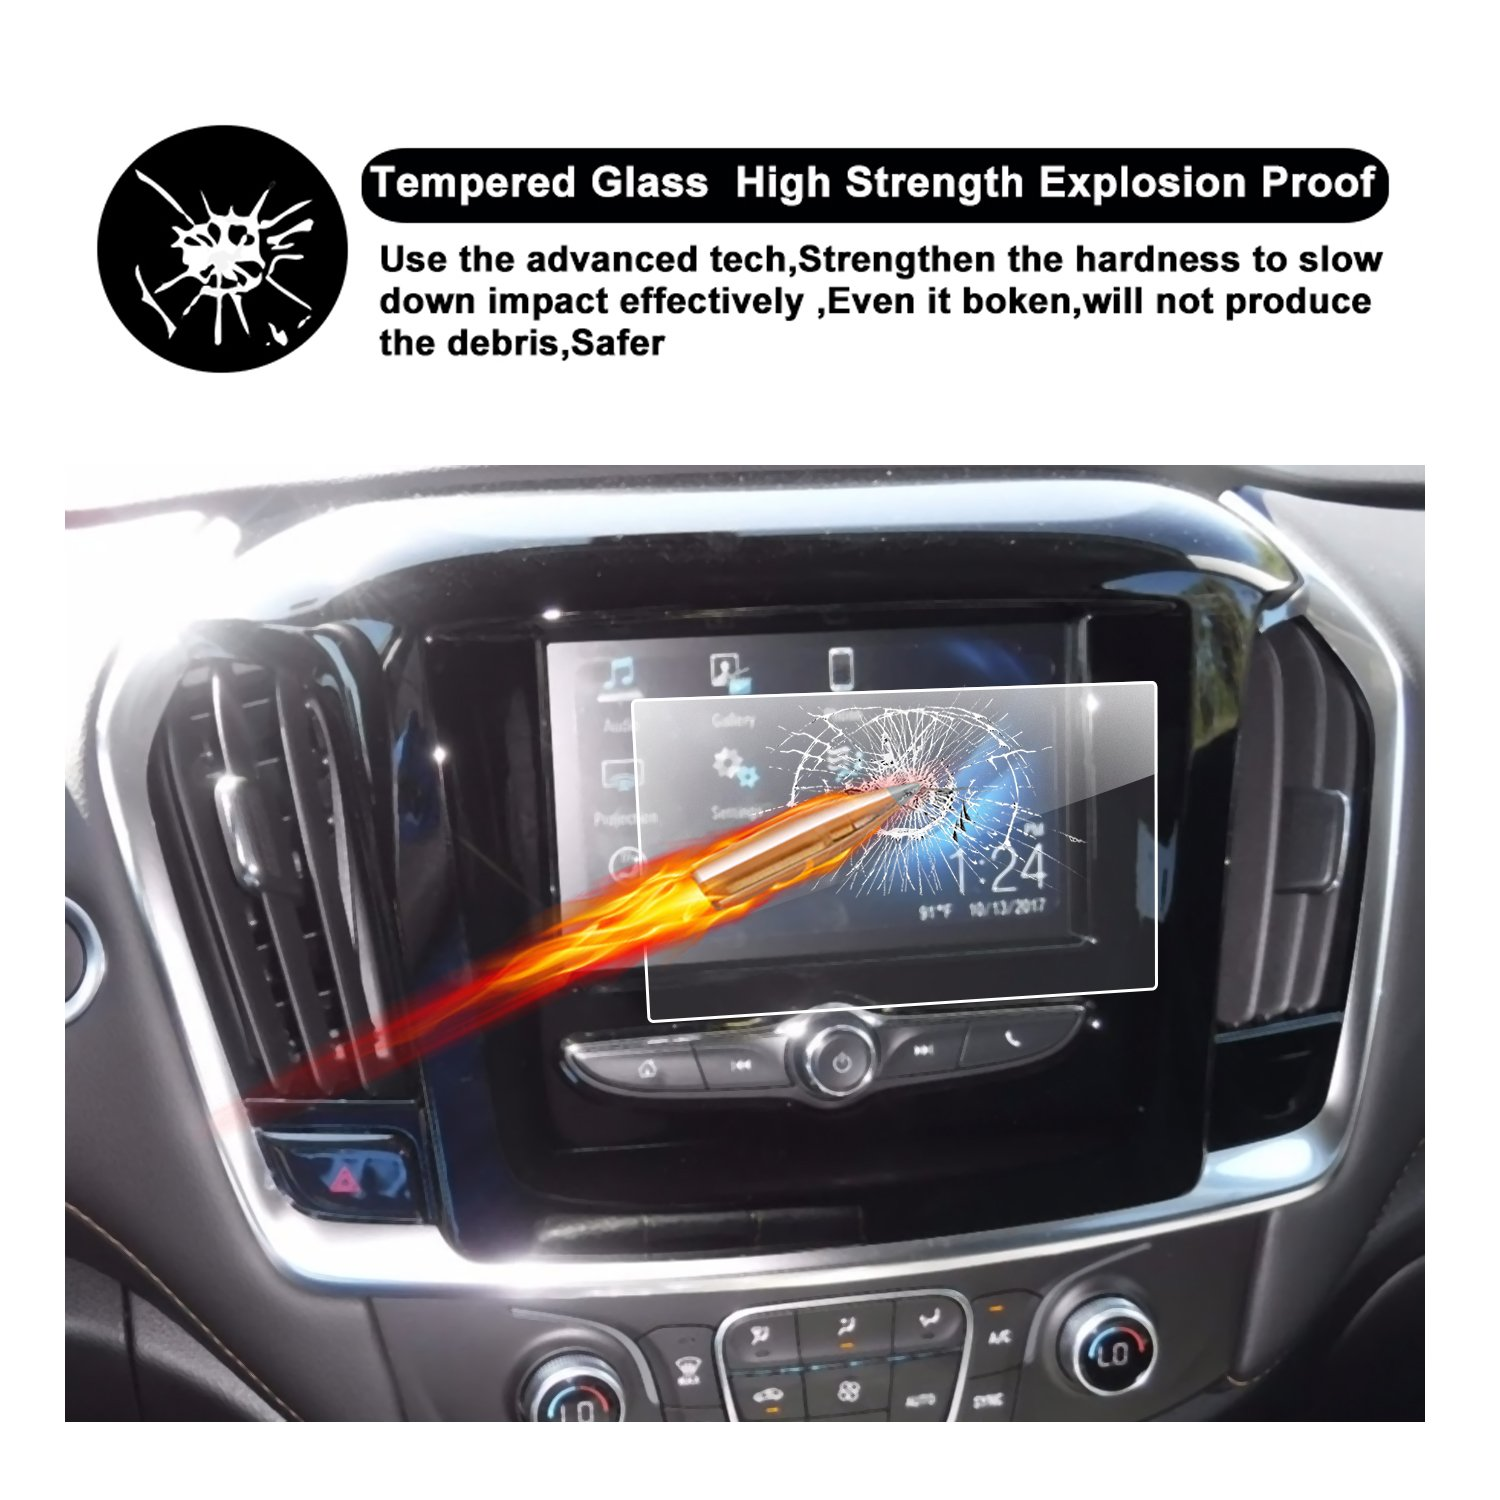 New R RUIYA HD Clear Tempered Glass Screen Guard Shield Scratch-Resistant Ultra HD Extreme Clarity 8-Inch 2018 Chevrolet Traverse MyLink Display Navigation Screen Protector